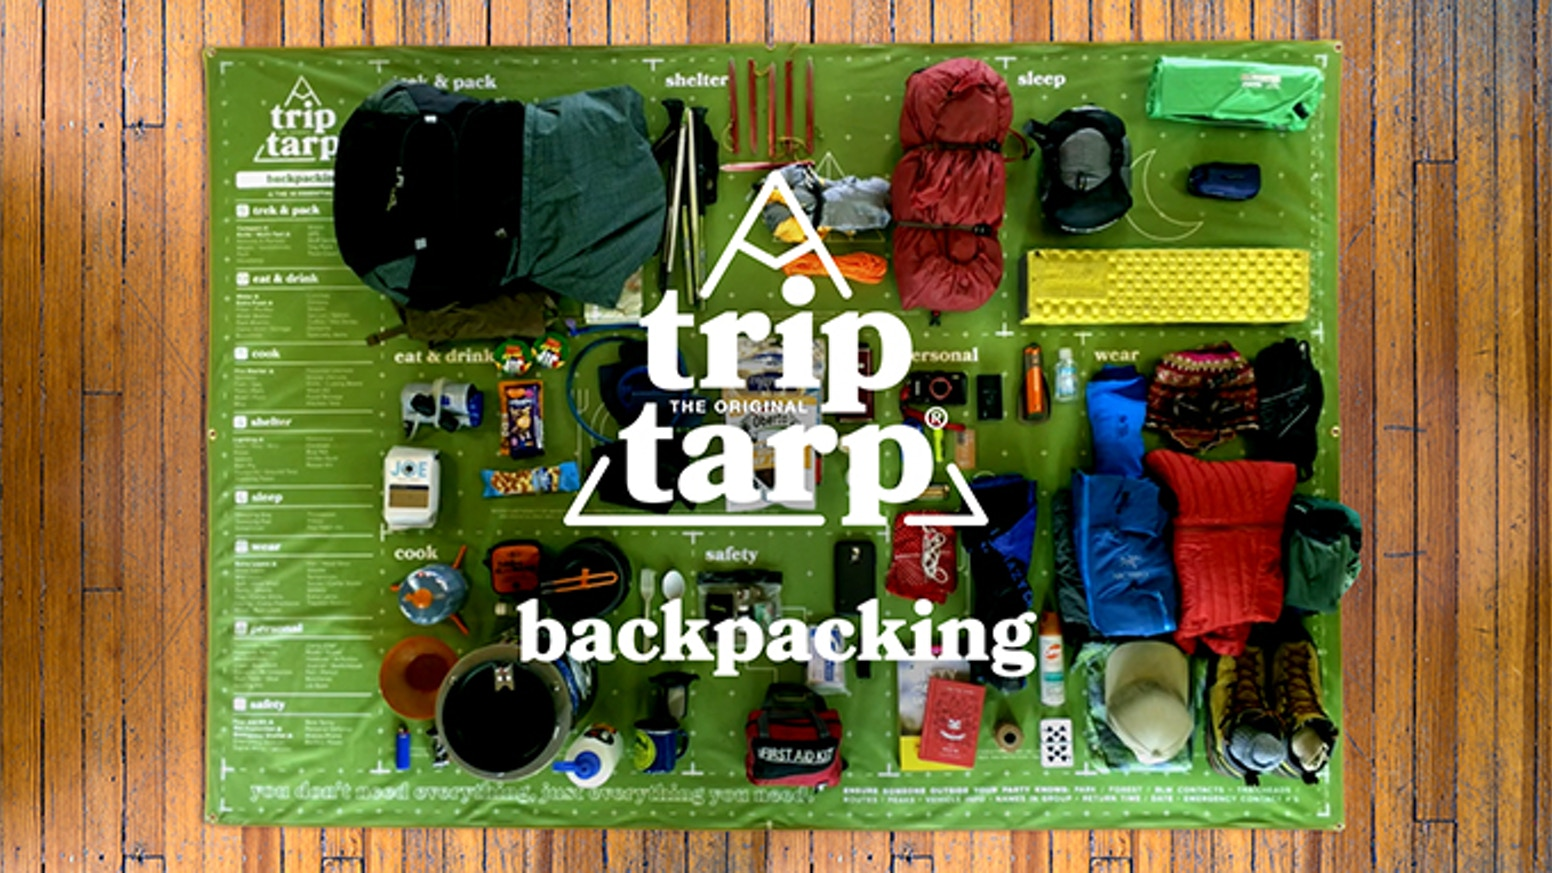 Pack & plan backpacking trips with the most comprehensive, organized way to sort gear and prepare for the backcountry.